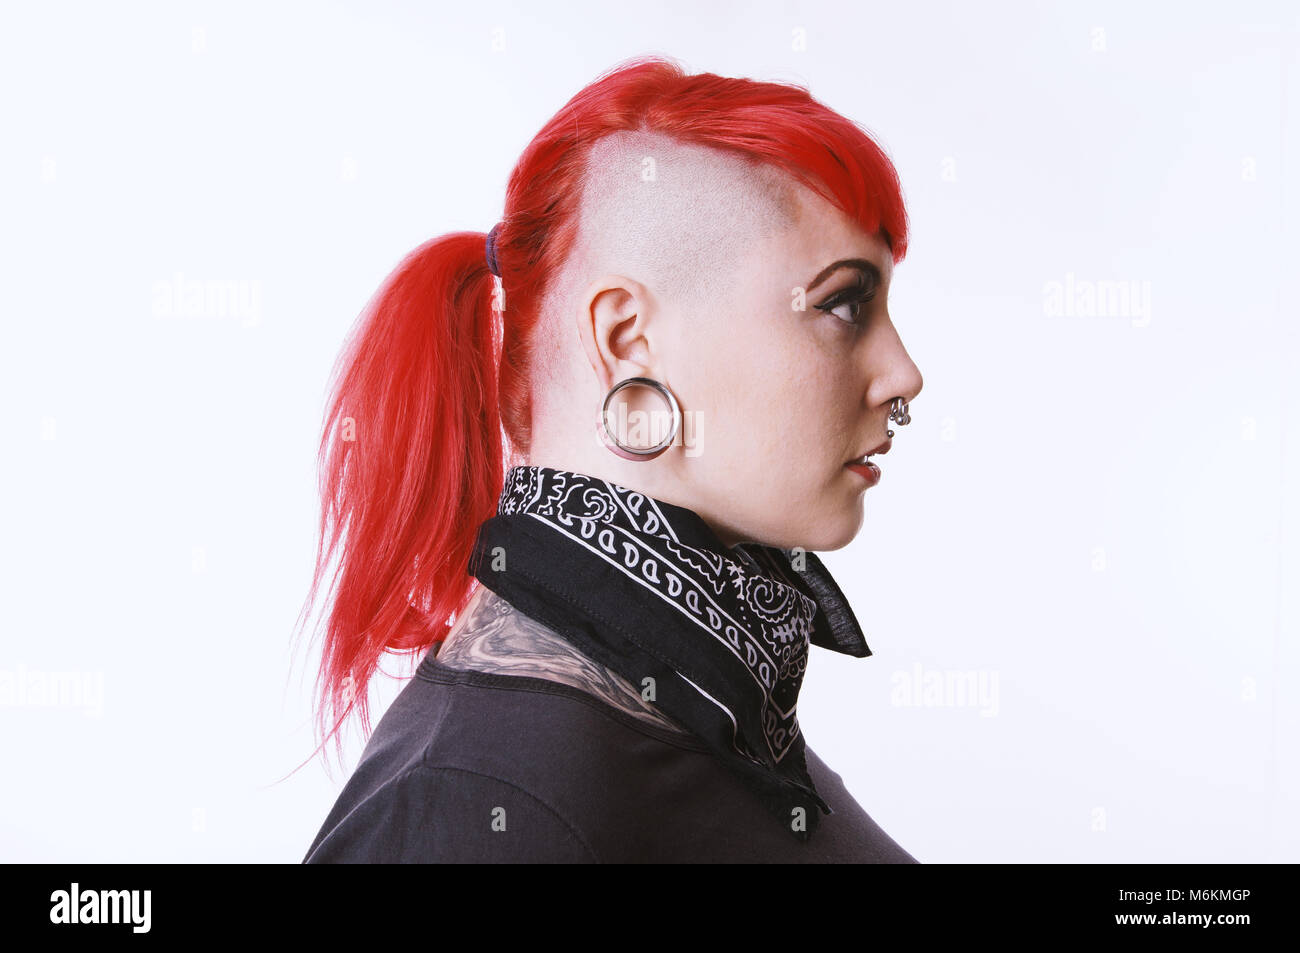 girl with sidecut piercings and tattoos Stock Photo